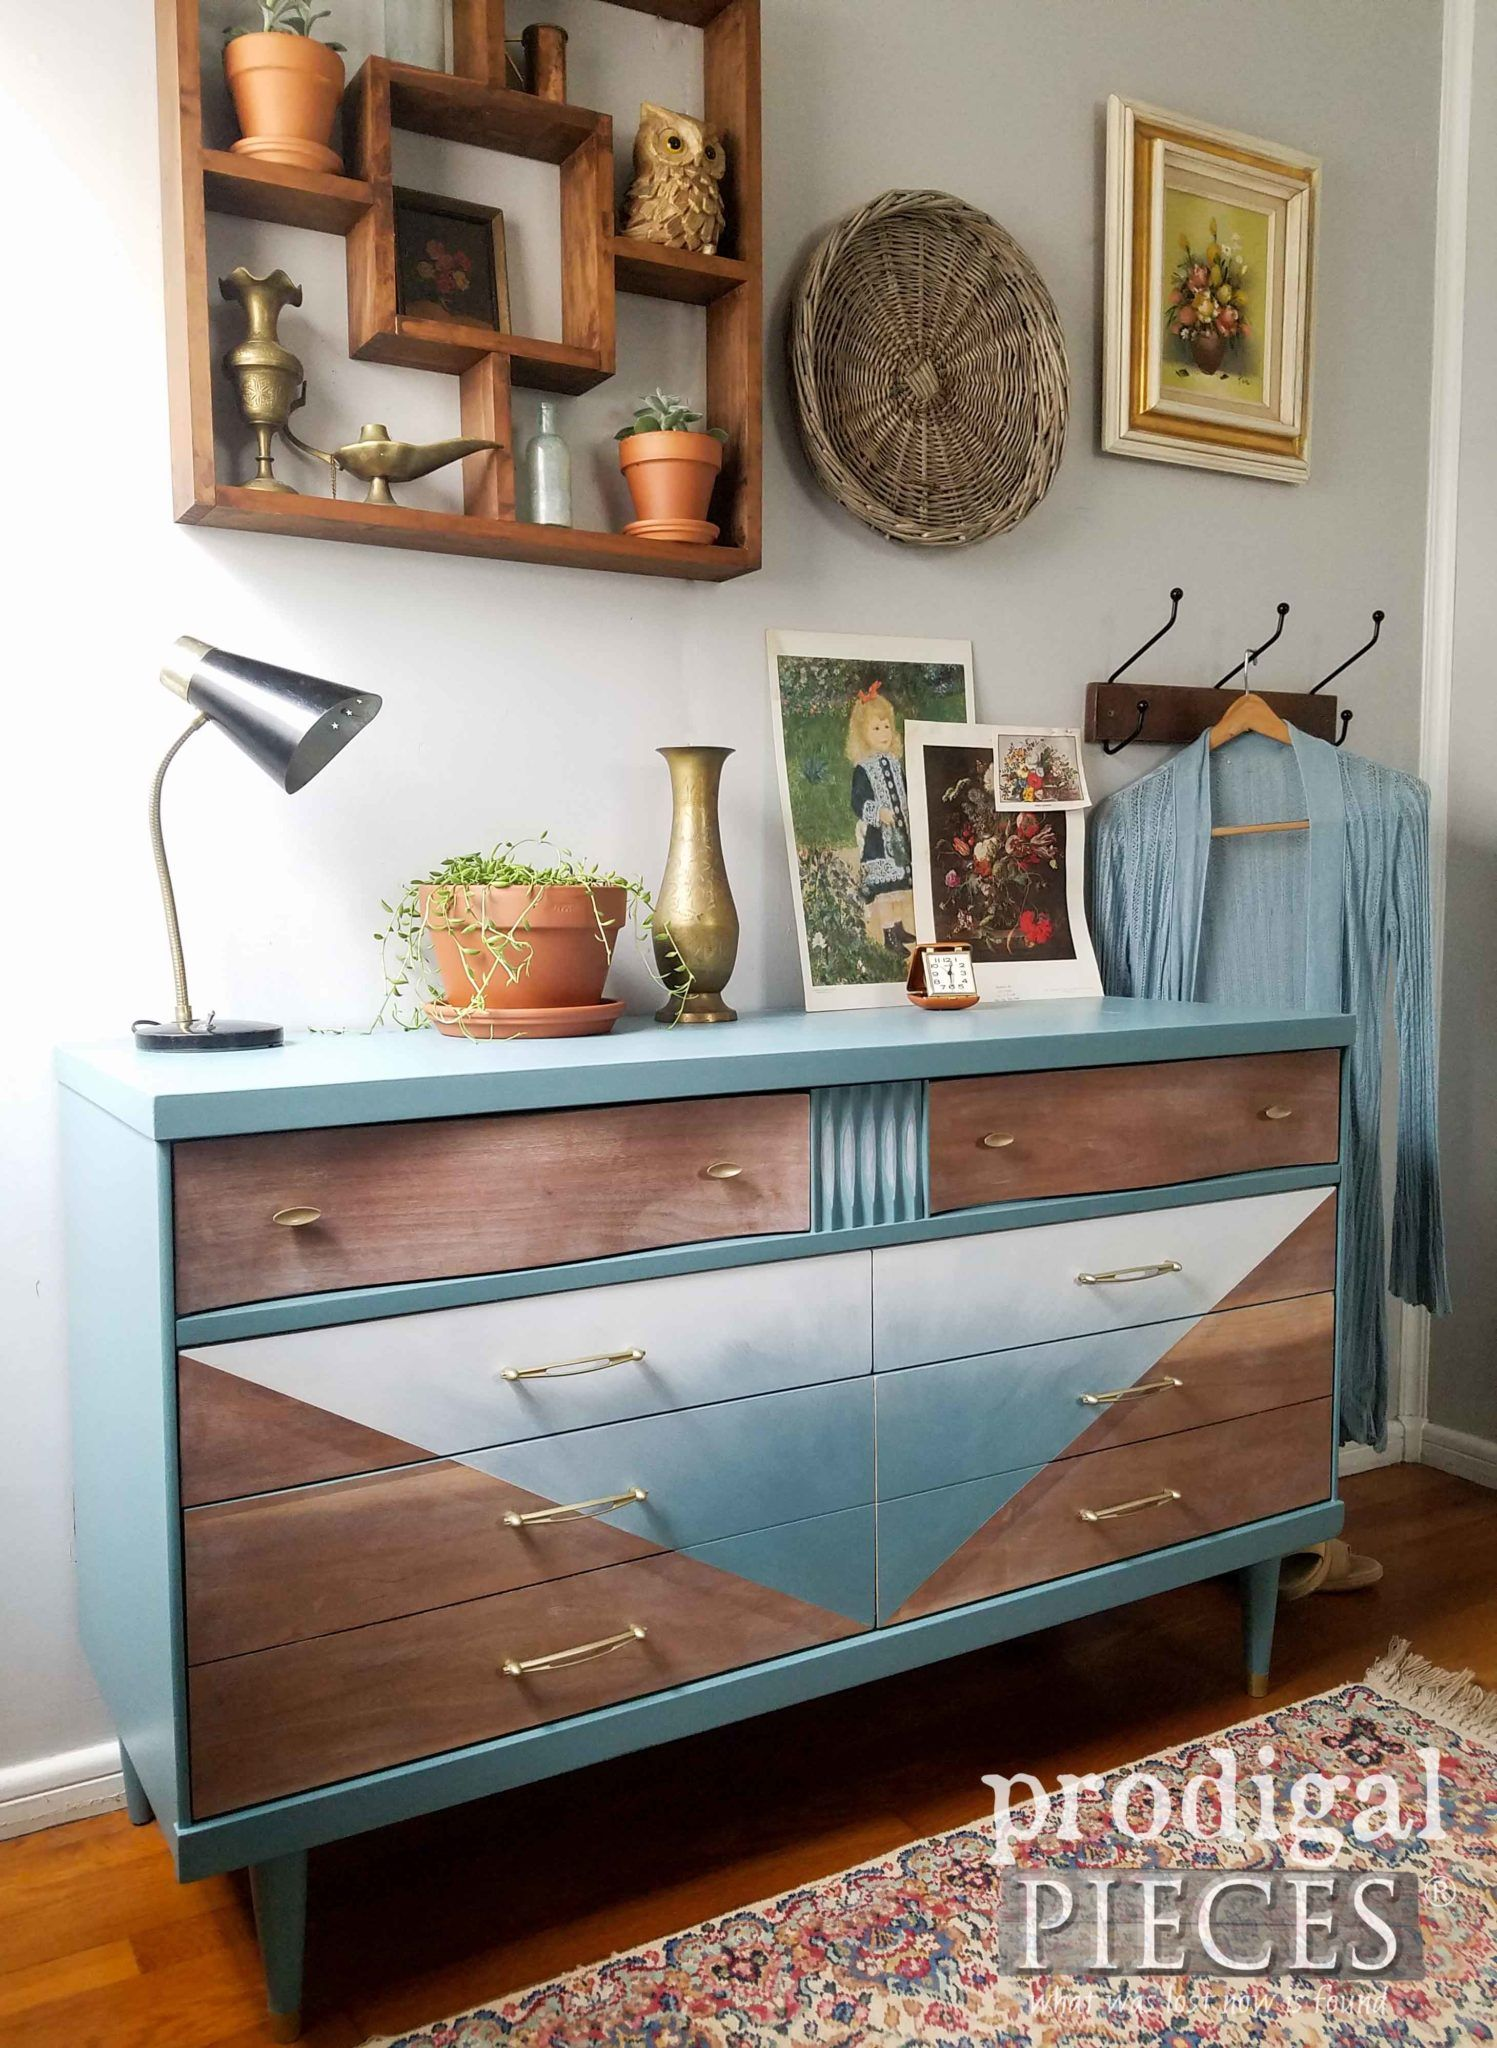 Boho Mid Century Modern Dresser Prodigal Pieces Funky Home Decor Cool Furniture Mid Century Modern Dresser